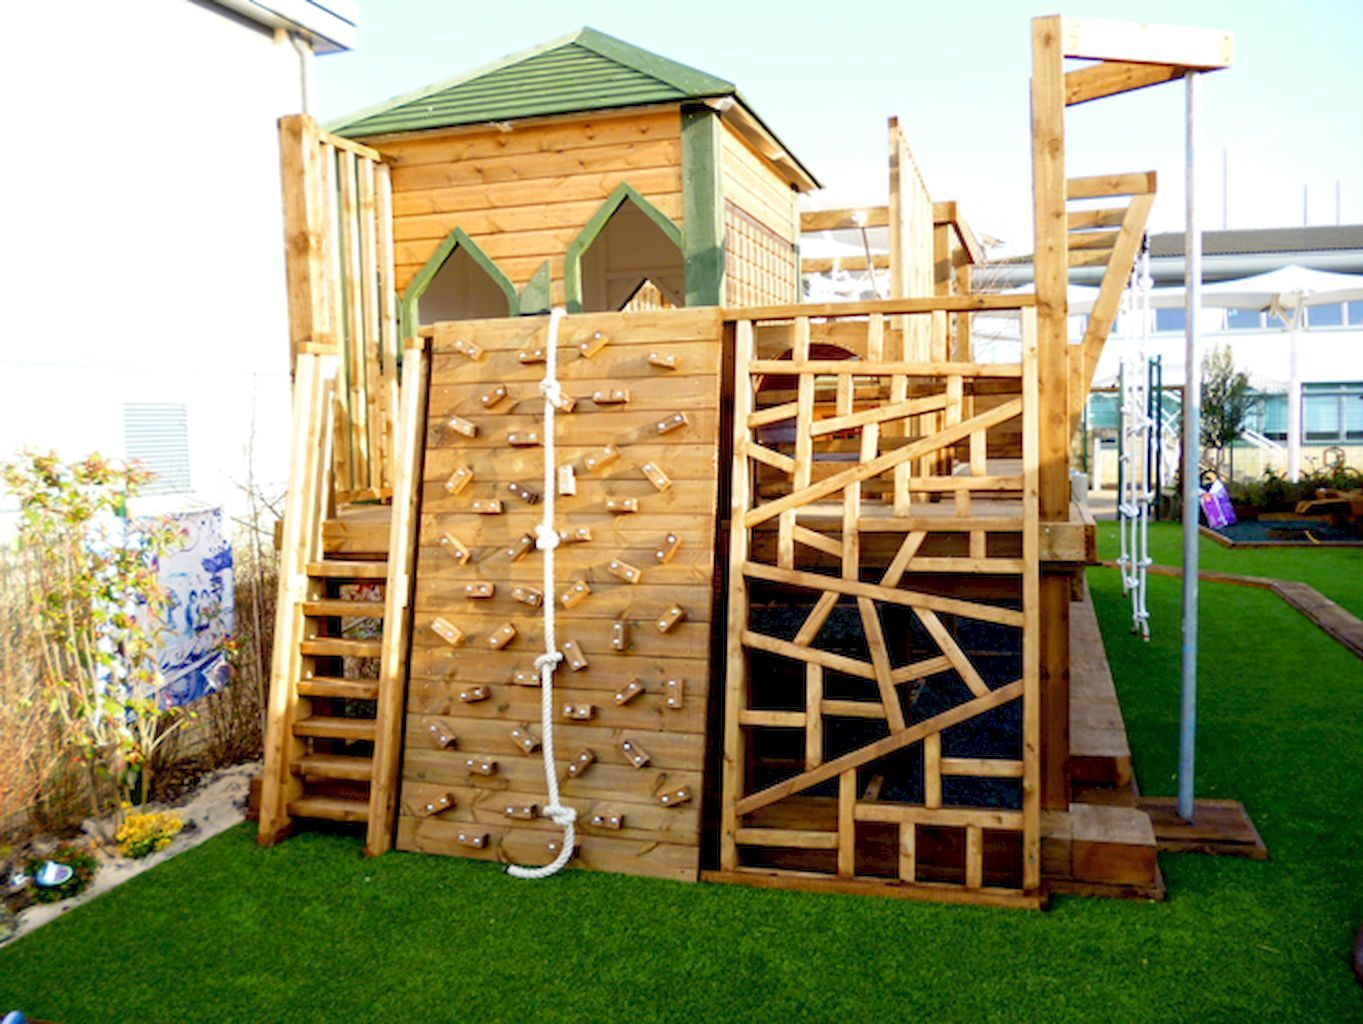 30 diy playground project ideas for backyard landscaping diy gorgeous 30 diy playground project ideas for backyard landscaping httpsinsidecorate solutioingenieria Gallery